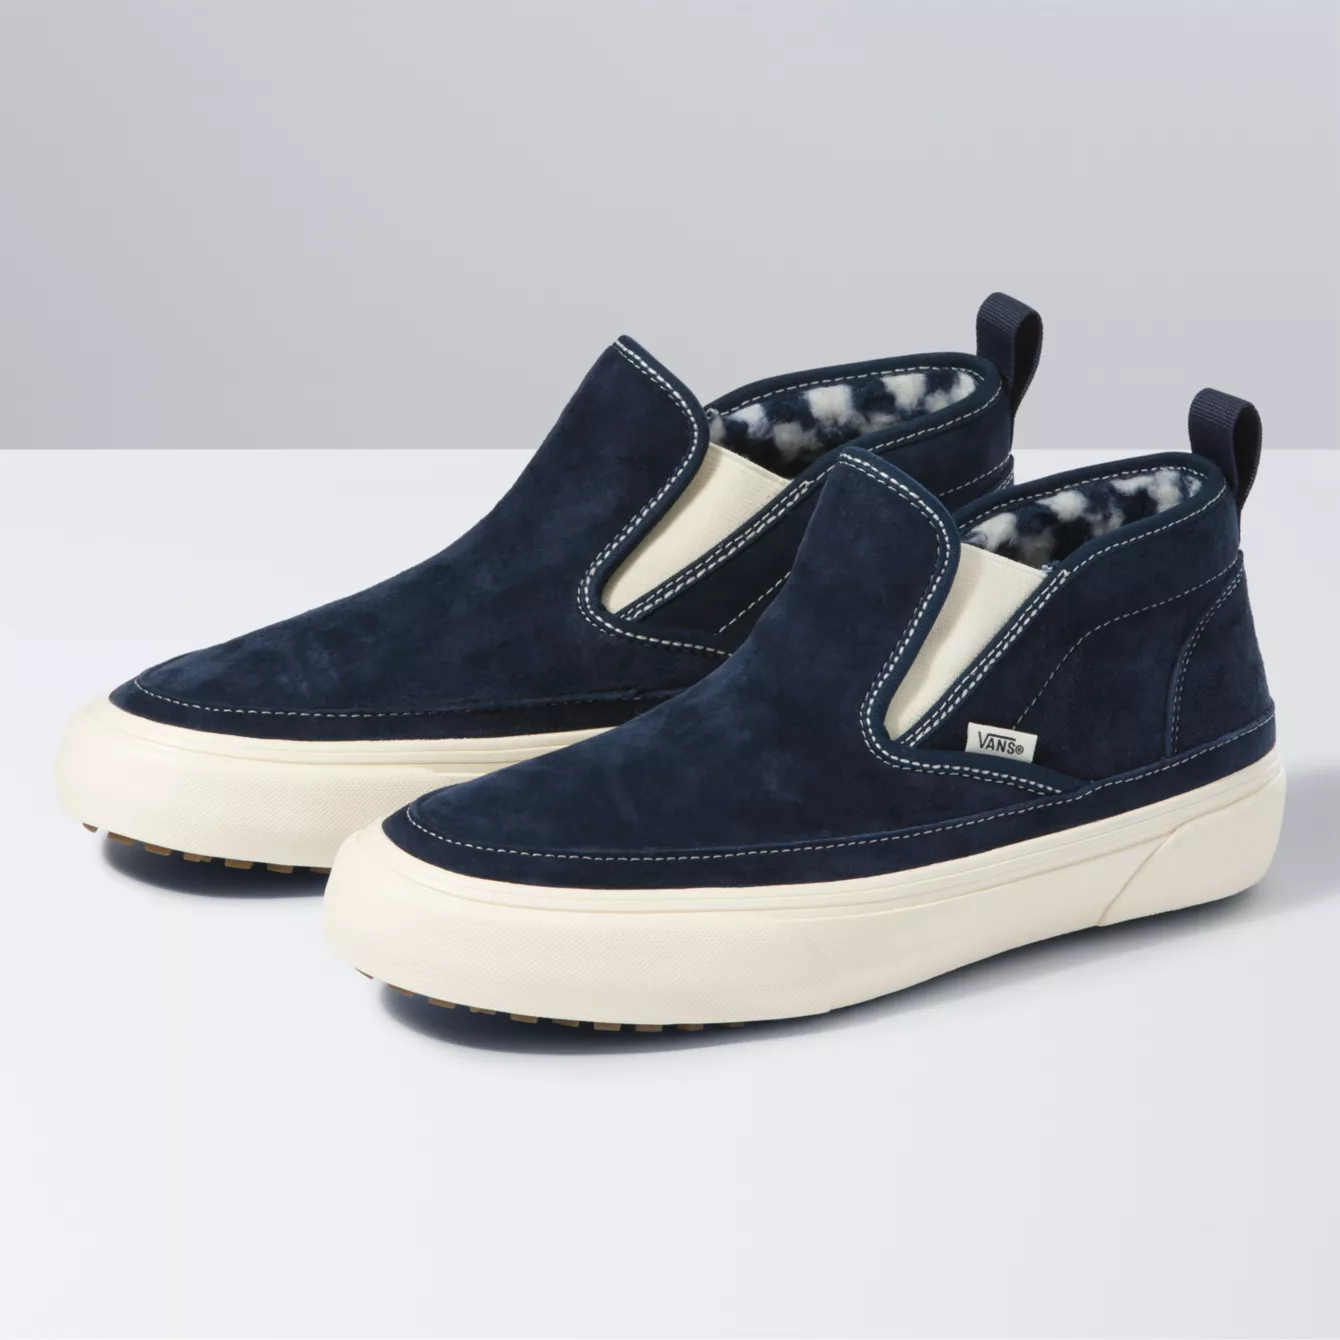 The suede sneakers in a midnight blue shade with white and blue furry lining